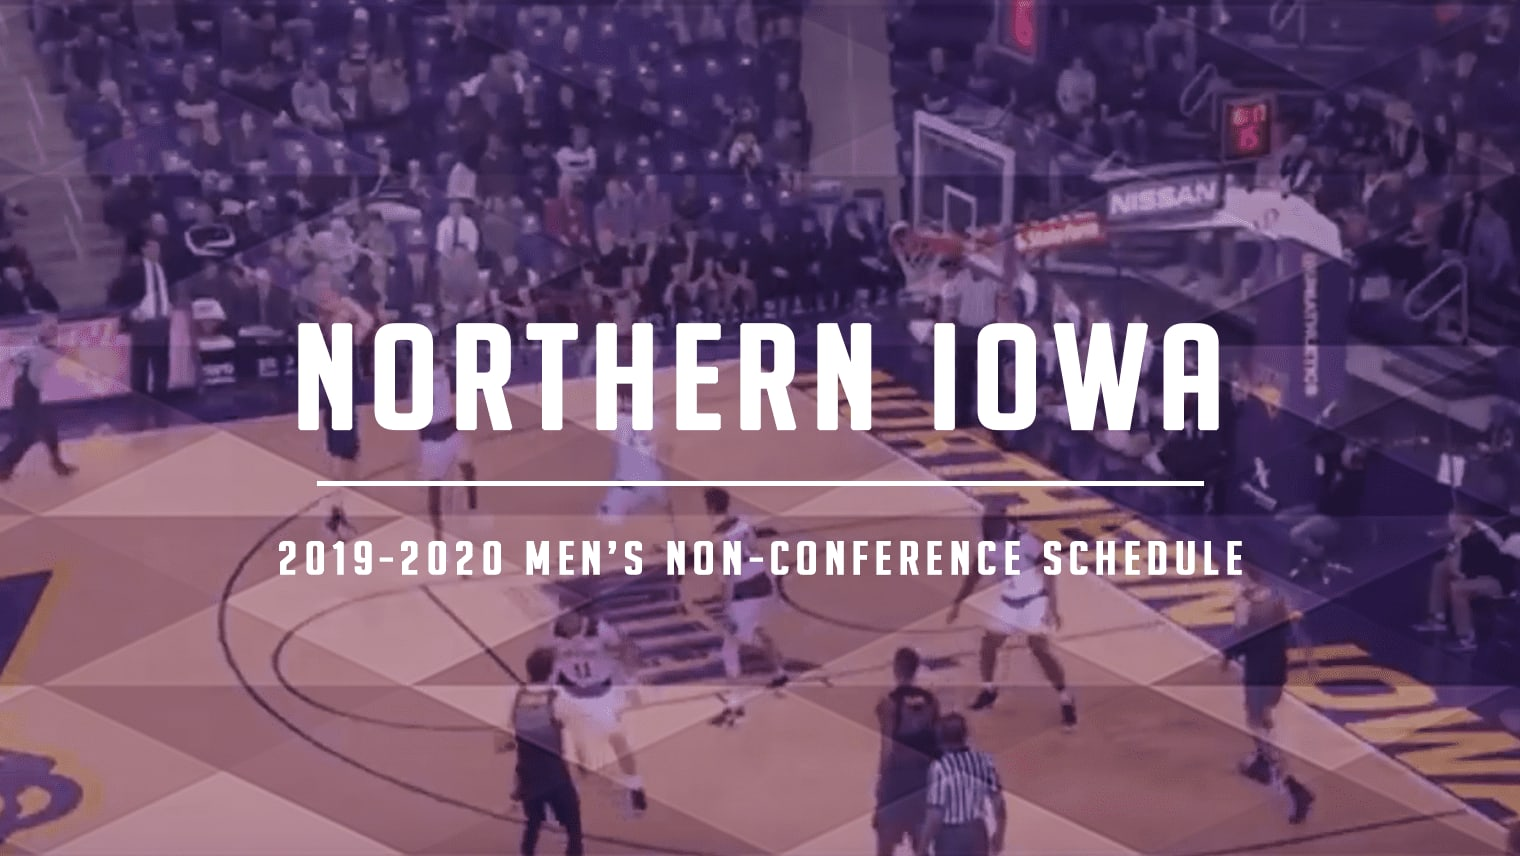 Northern Iowa has a few matchups against serious competition in its non-conference schedule, including Colorado and two games in the Cancun Challenge.